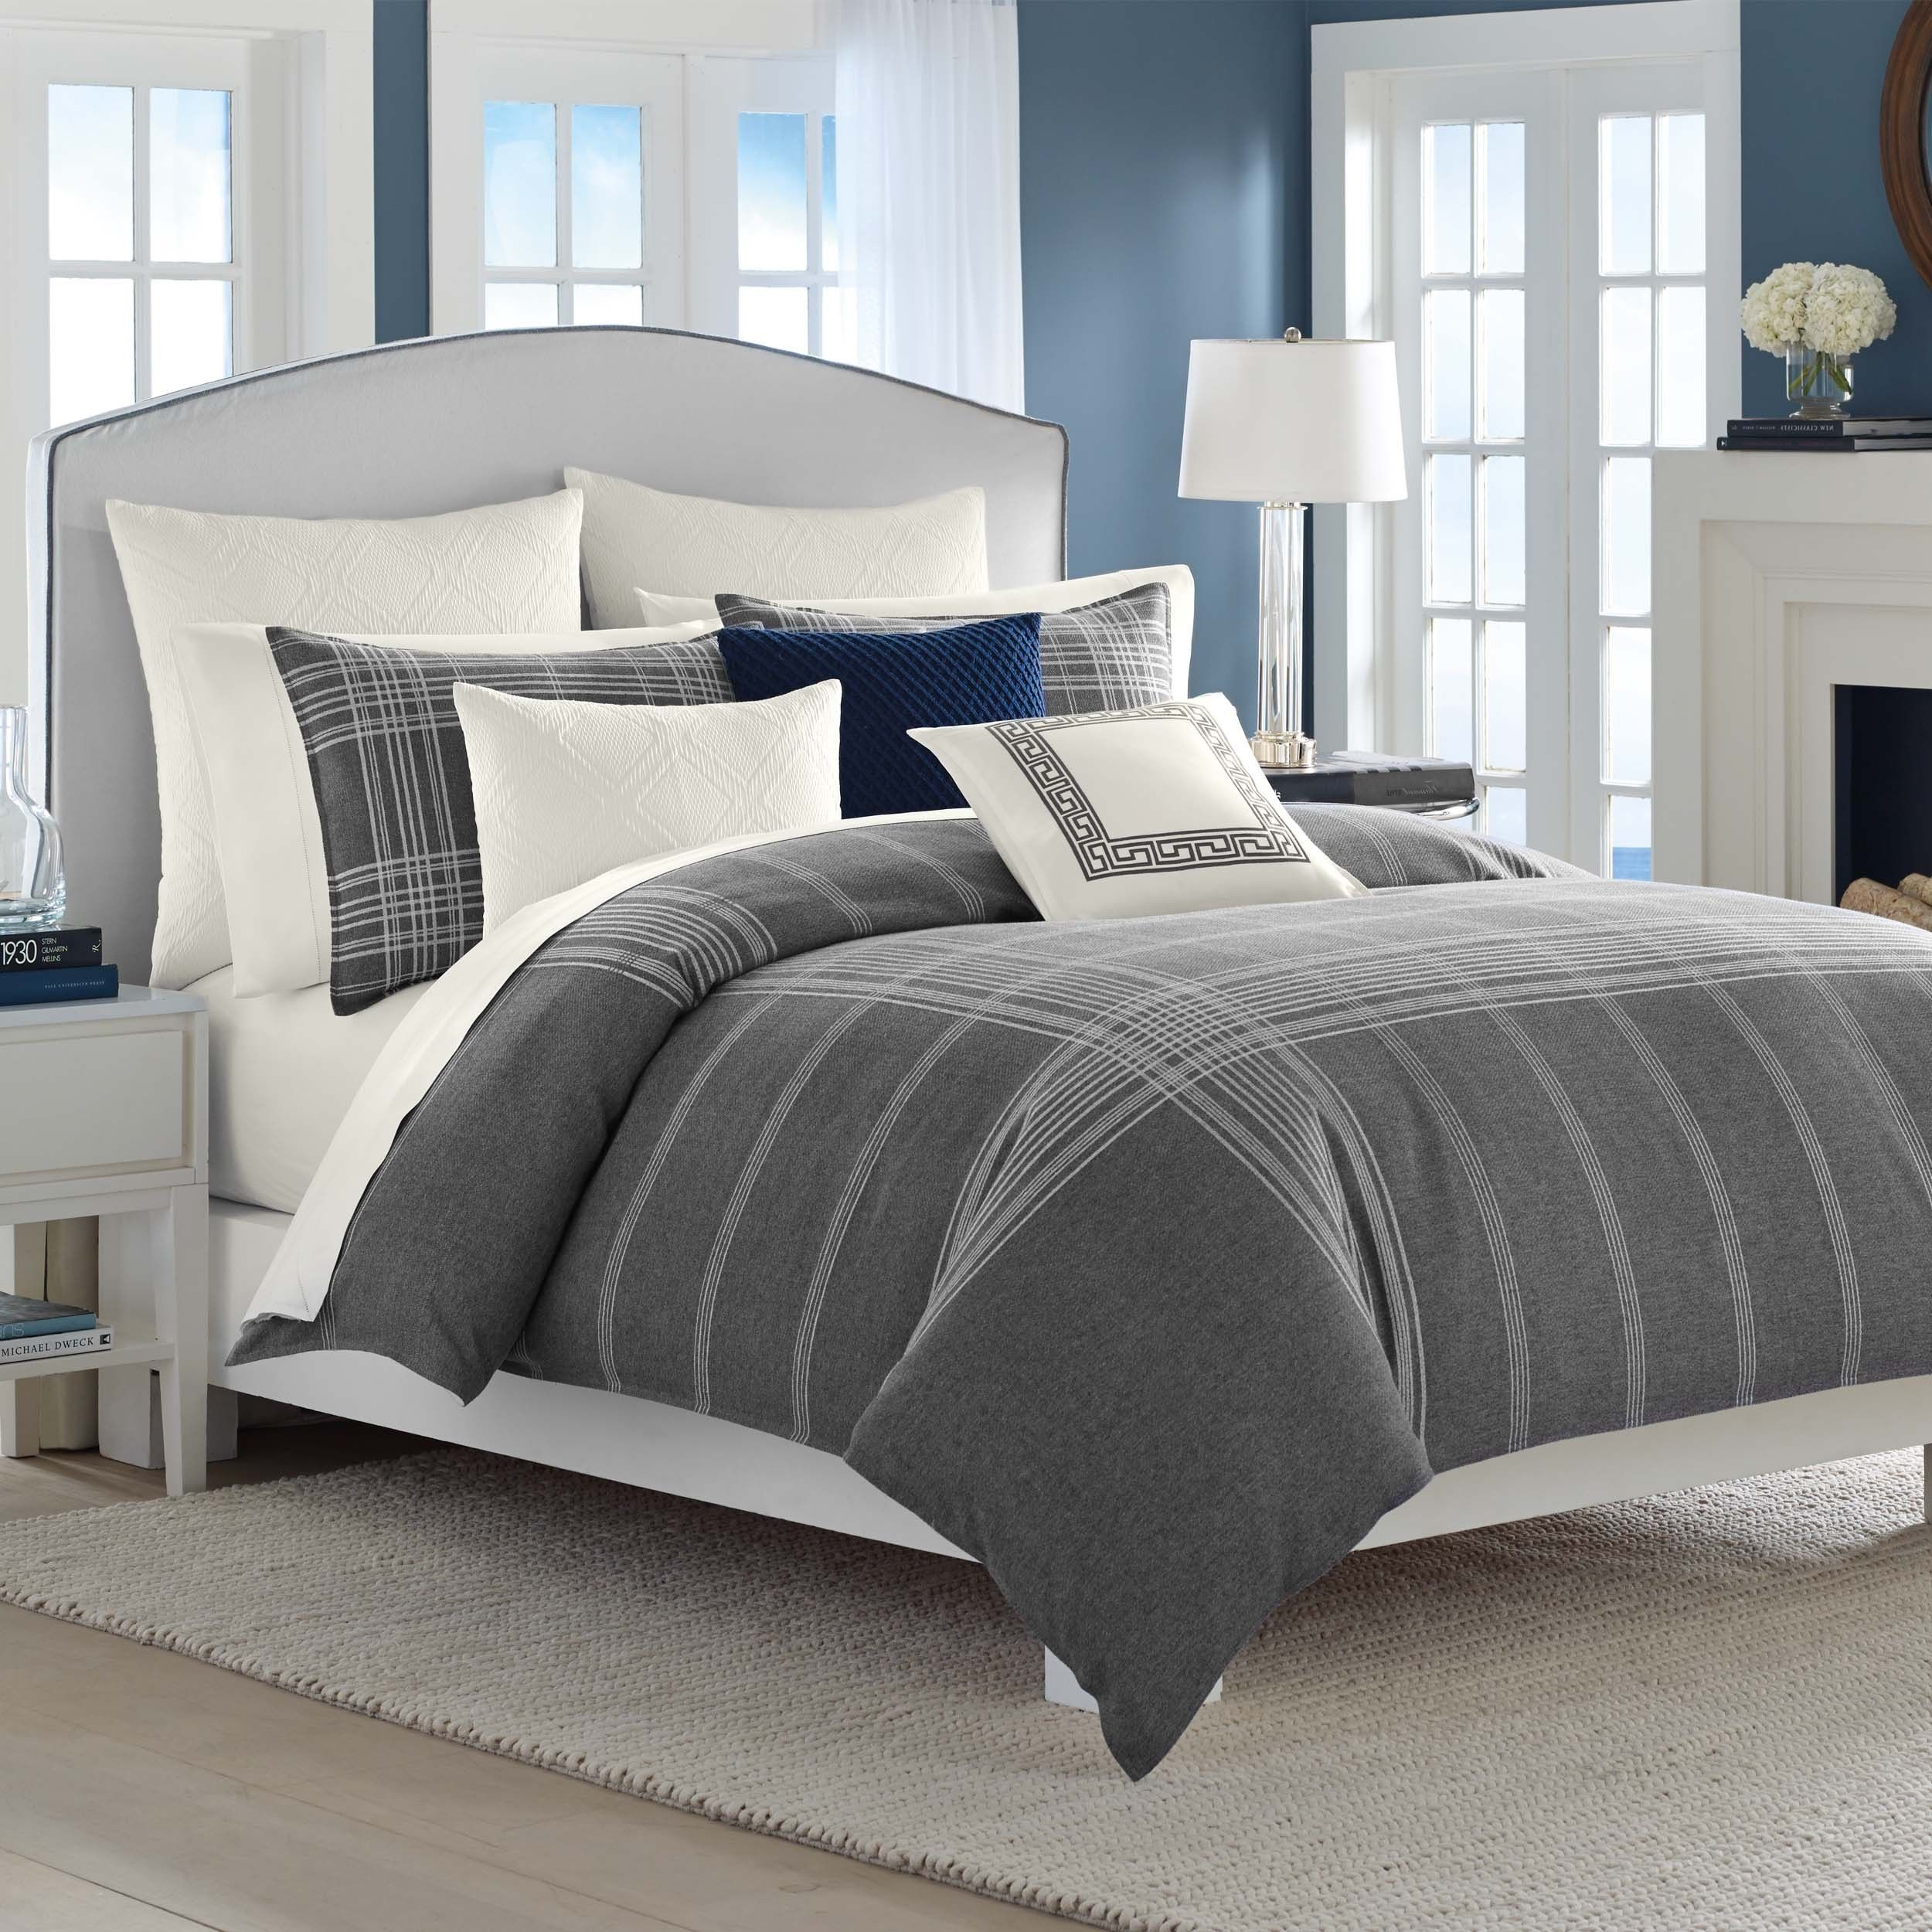 bed comforters twin comforter xl margate nautica king sets